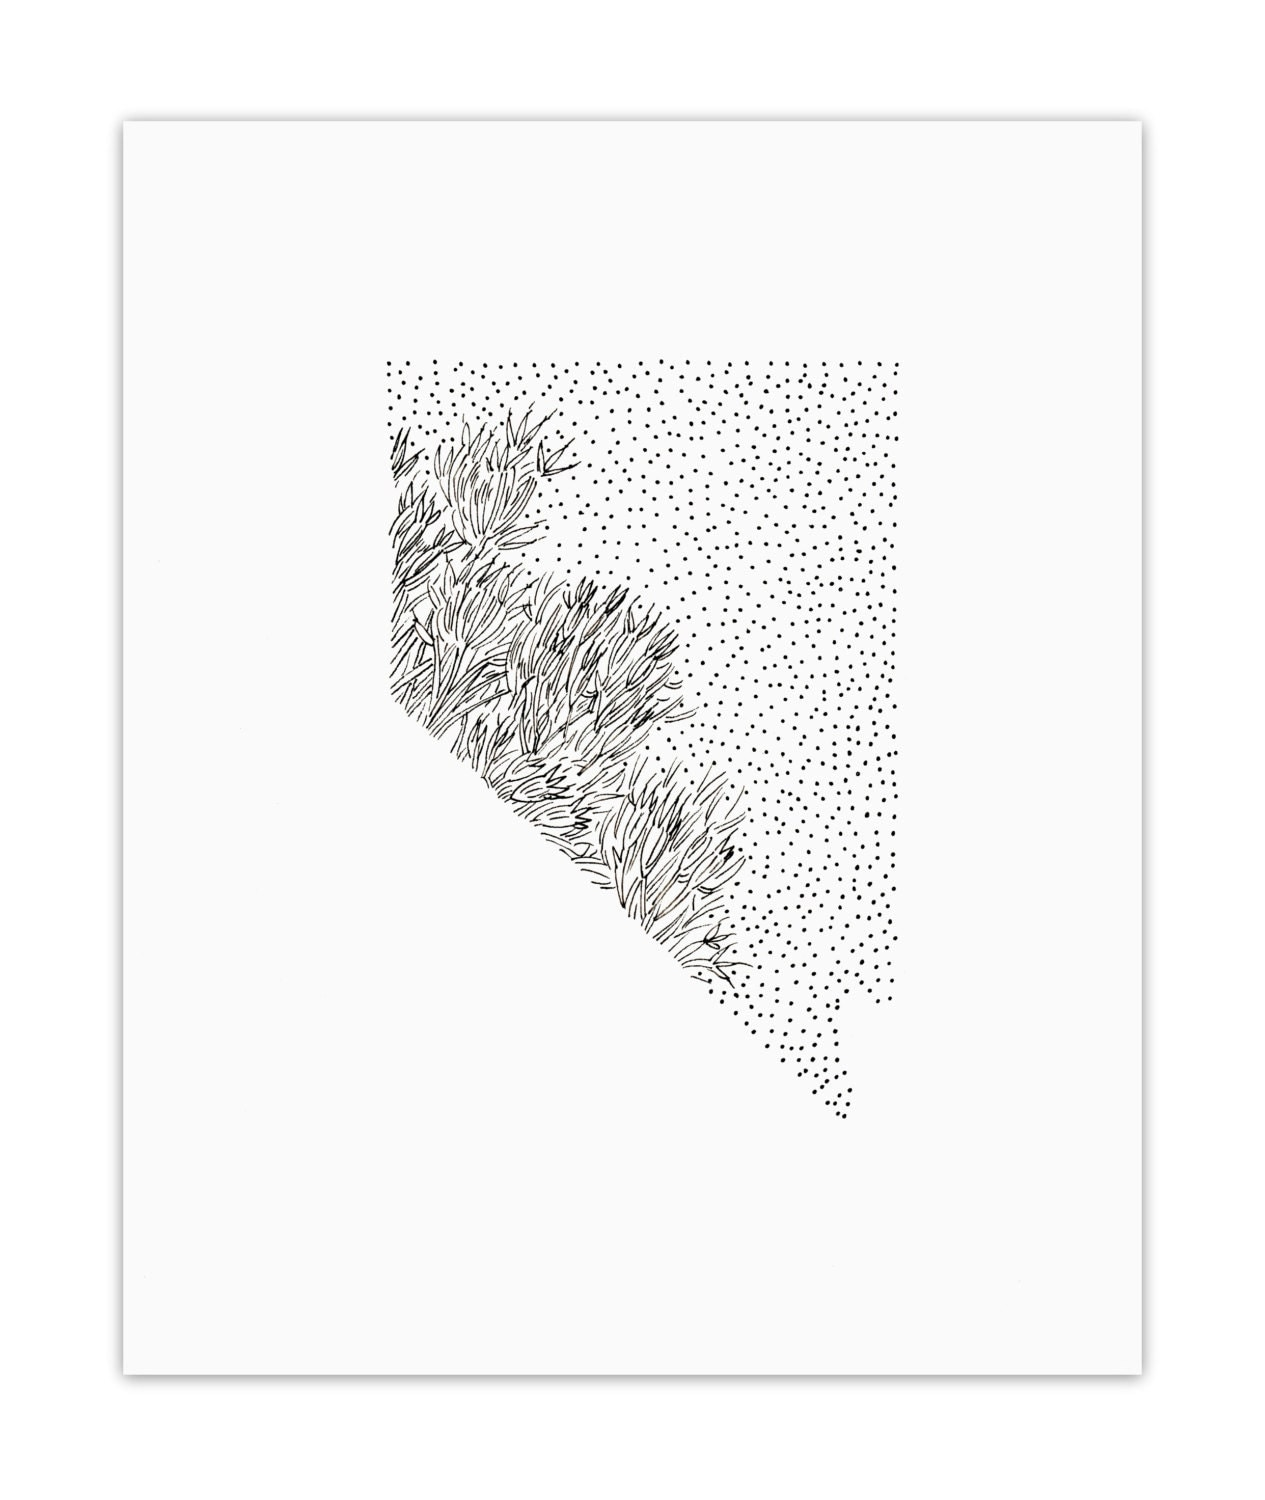 Nevada Sagebrush State Flower Drawing Giclee Print